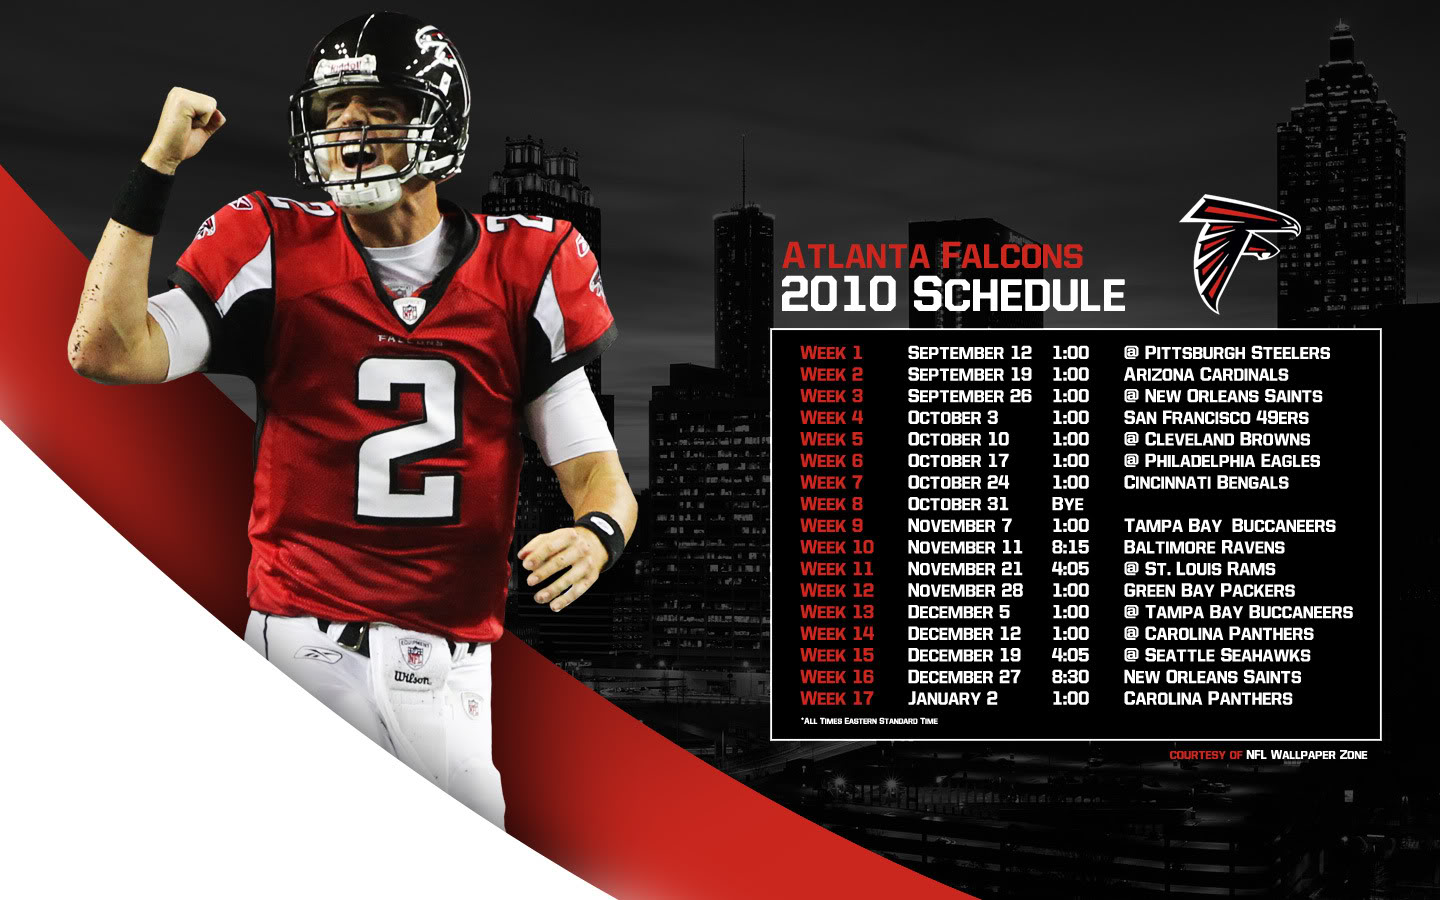 Atlanta falcons best atlanta falcons wallpaper hd hd wallpaper 1440x900 voltagebd Images